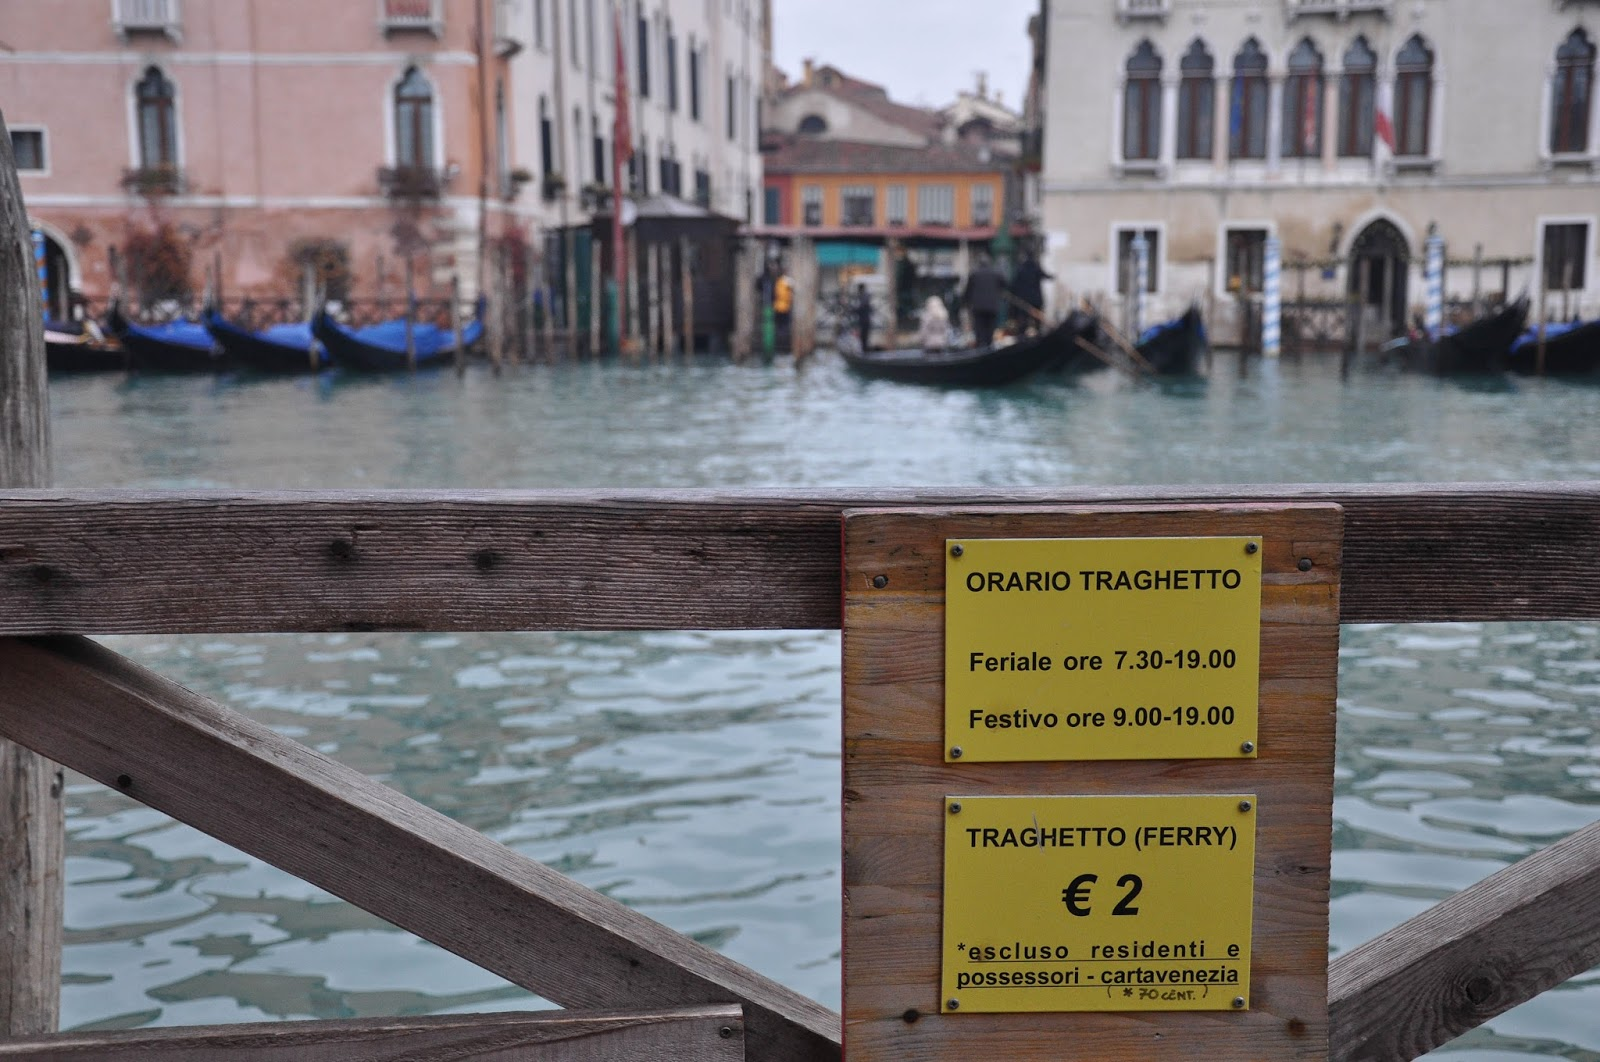 Price list and opening hours of a traghetto, Venice, Italy